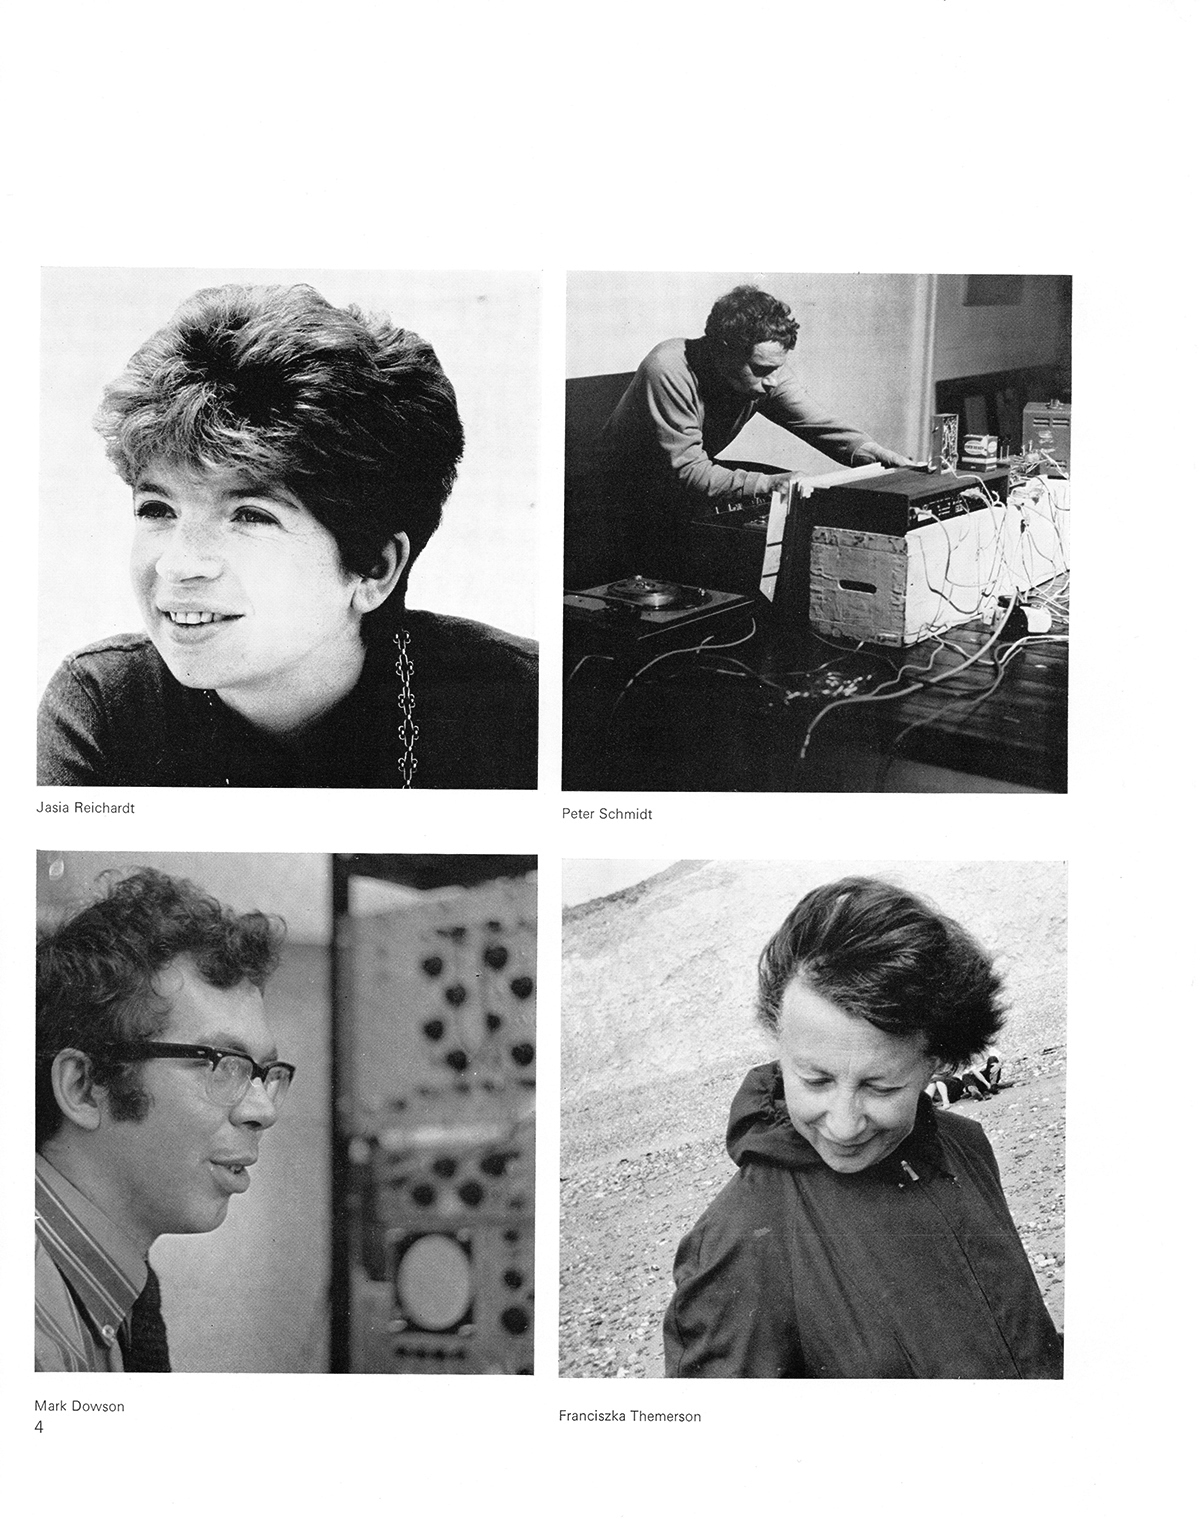 Cybernetic Serendipity: the computer and the arts. Page 4. Clockwise from top left: Jasia Reichardt, Peter Schmidt, Mark Dowson, Franciszka Themerson. Published by Studio International (special issue), 1968. © Studio International Foundation.